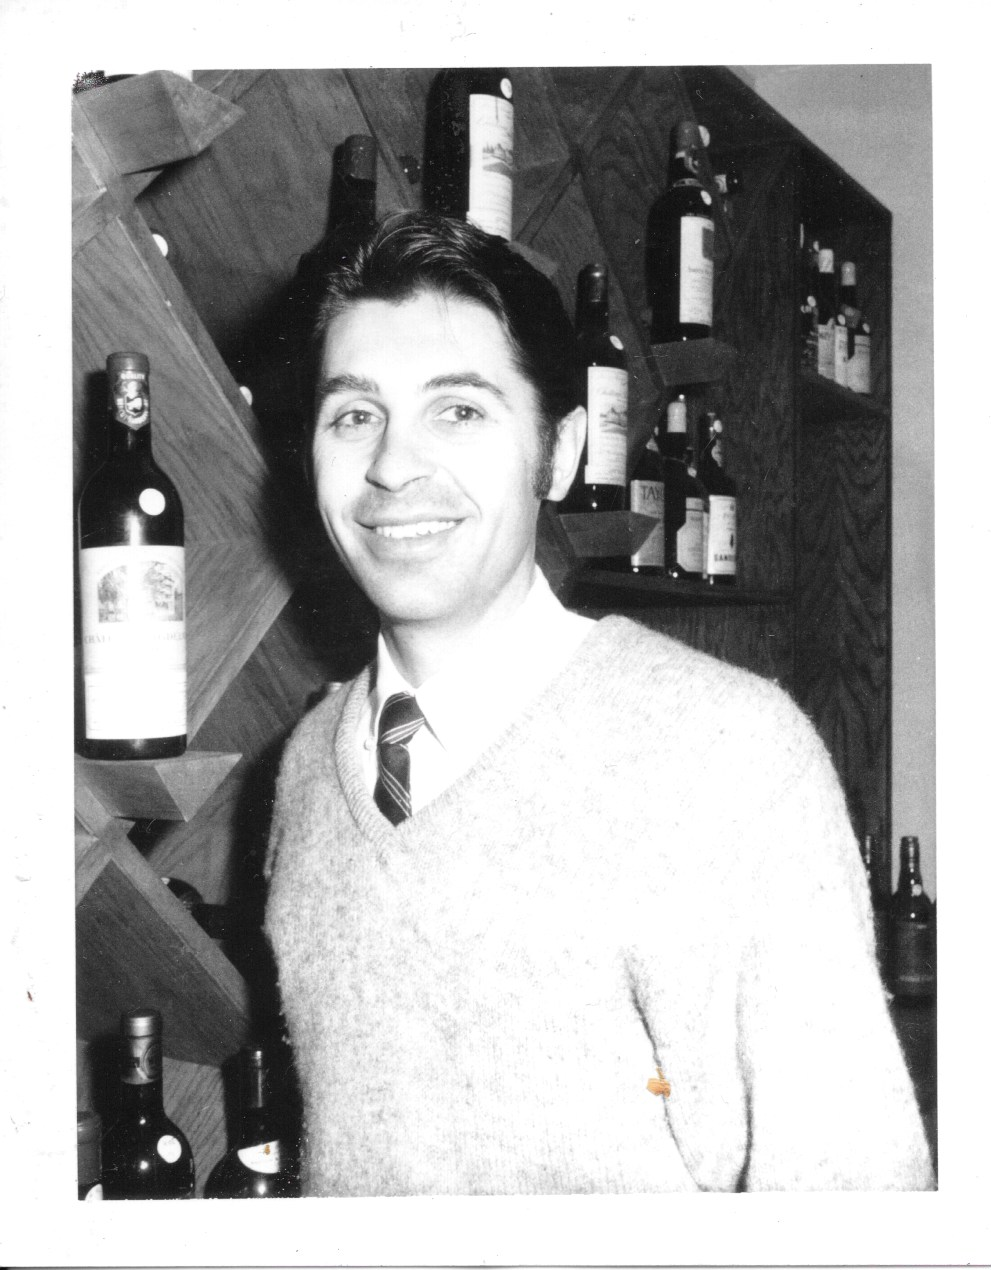 Emile Ninuad at first shop, circa 1969